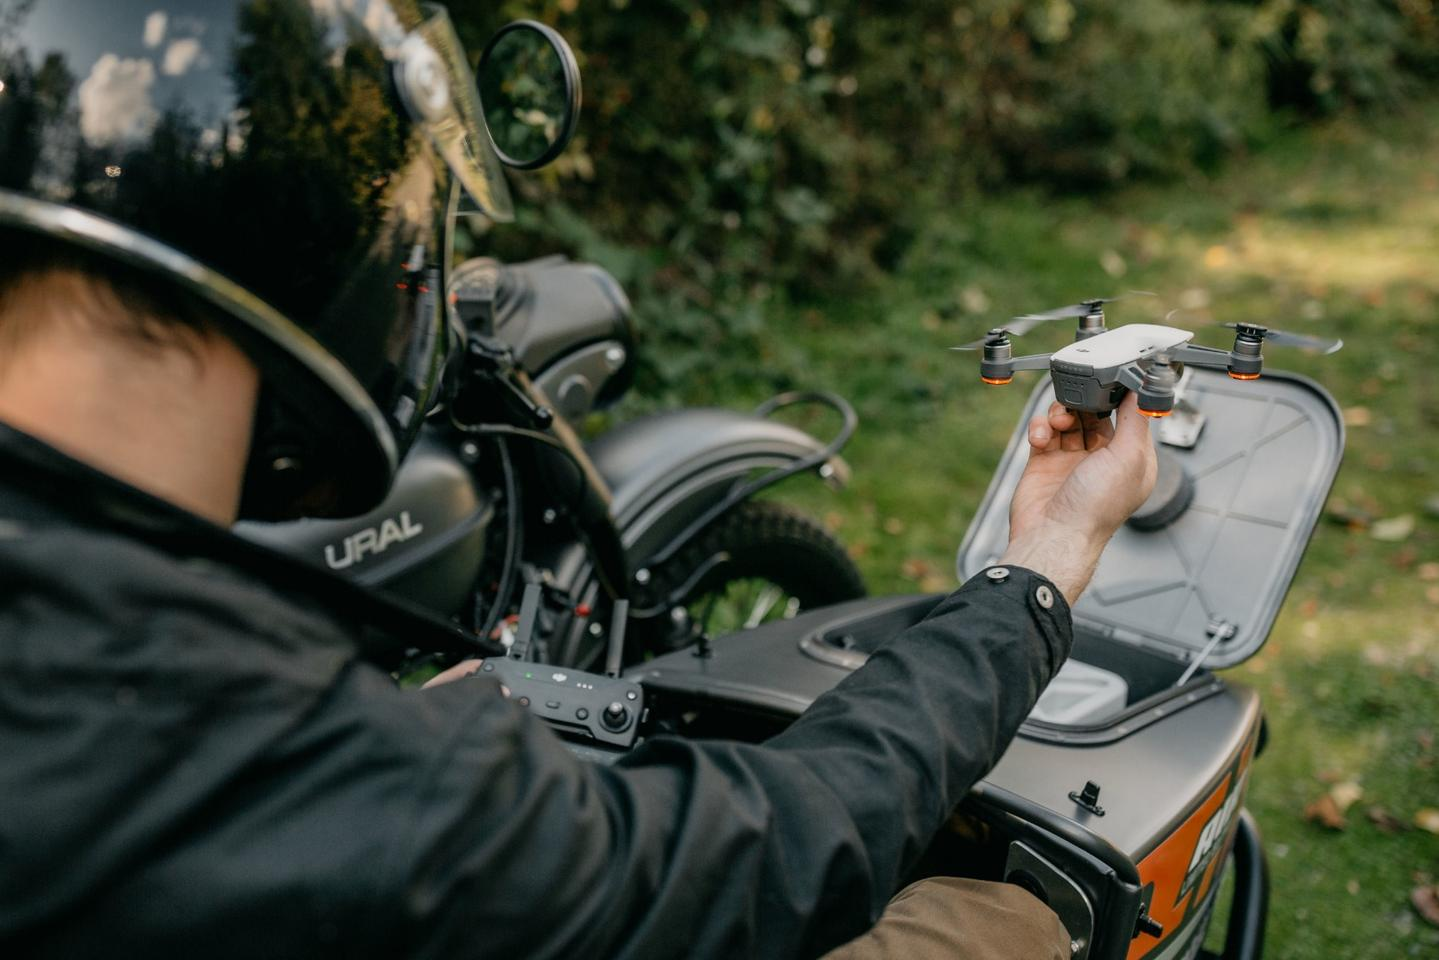 A motorcycle sidecar with a built-in drone station: the Ural Air